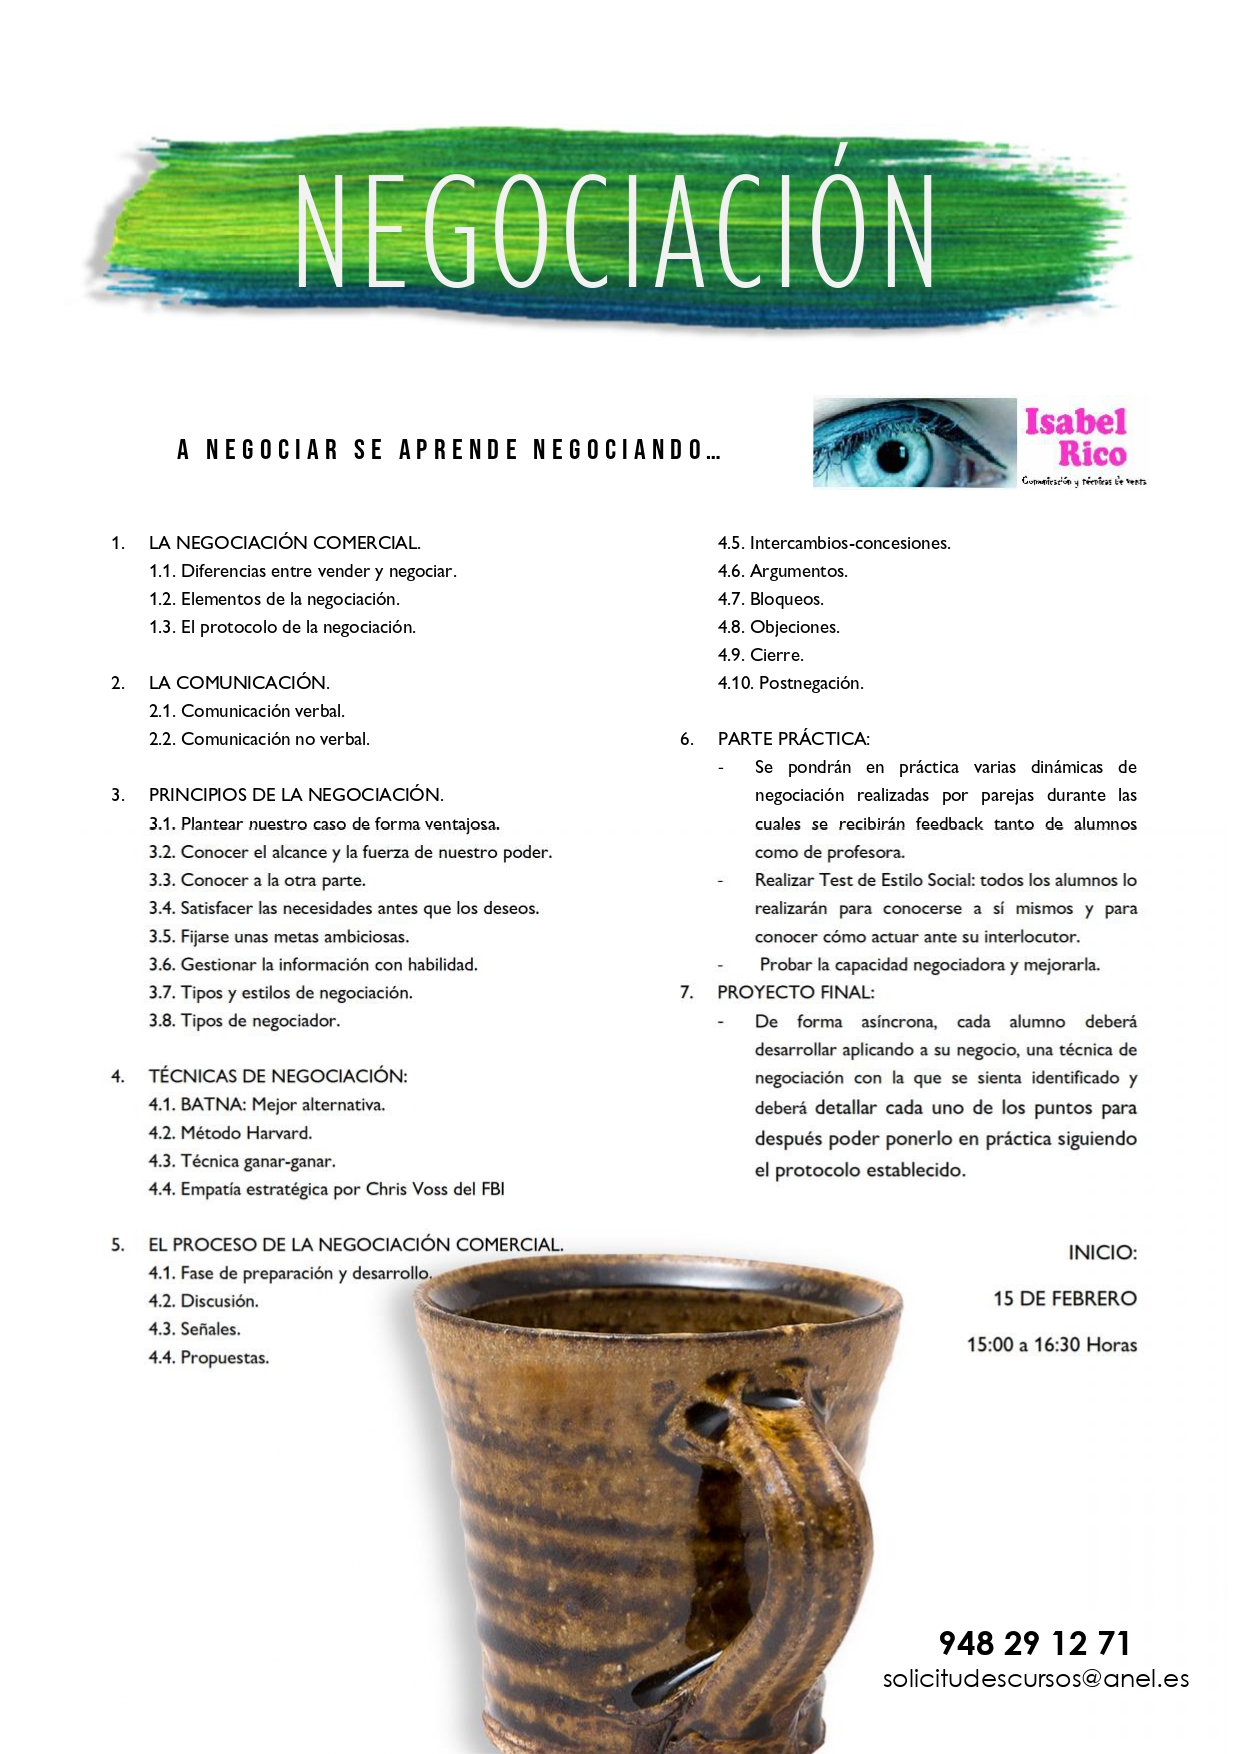 Sector Comercio Difusion4_pages-to-jpg-0003